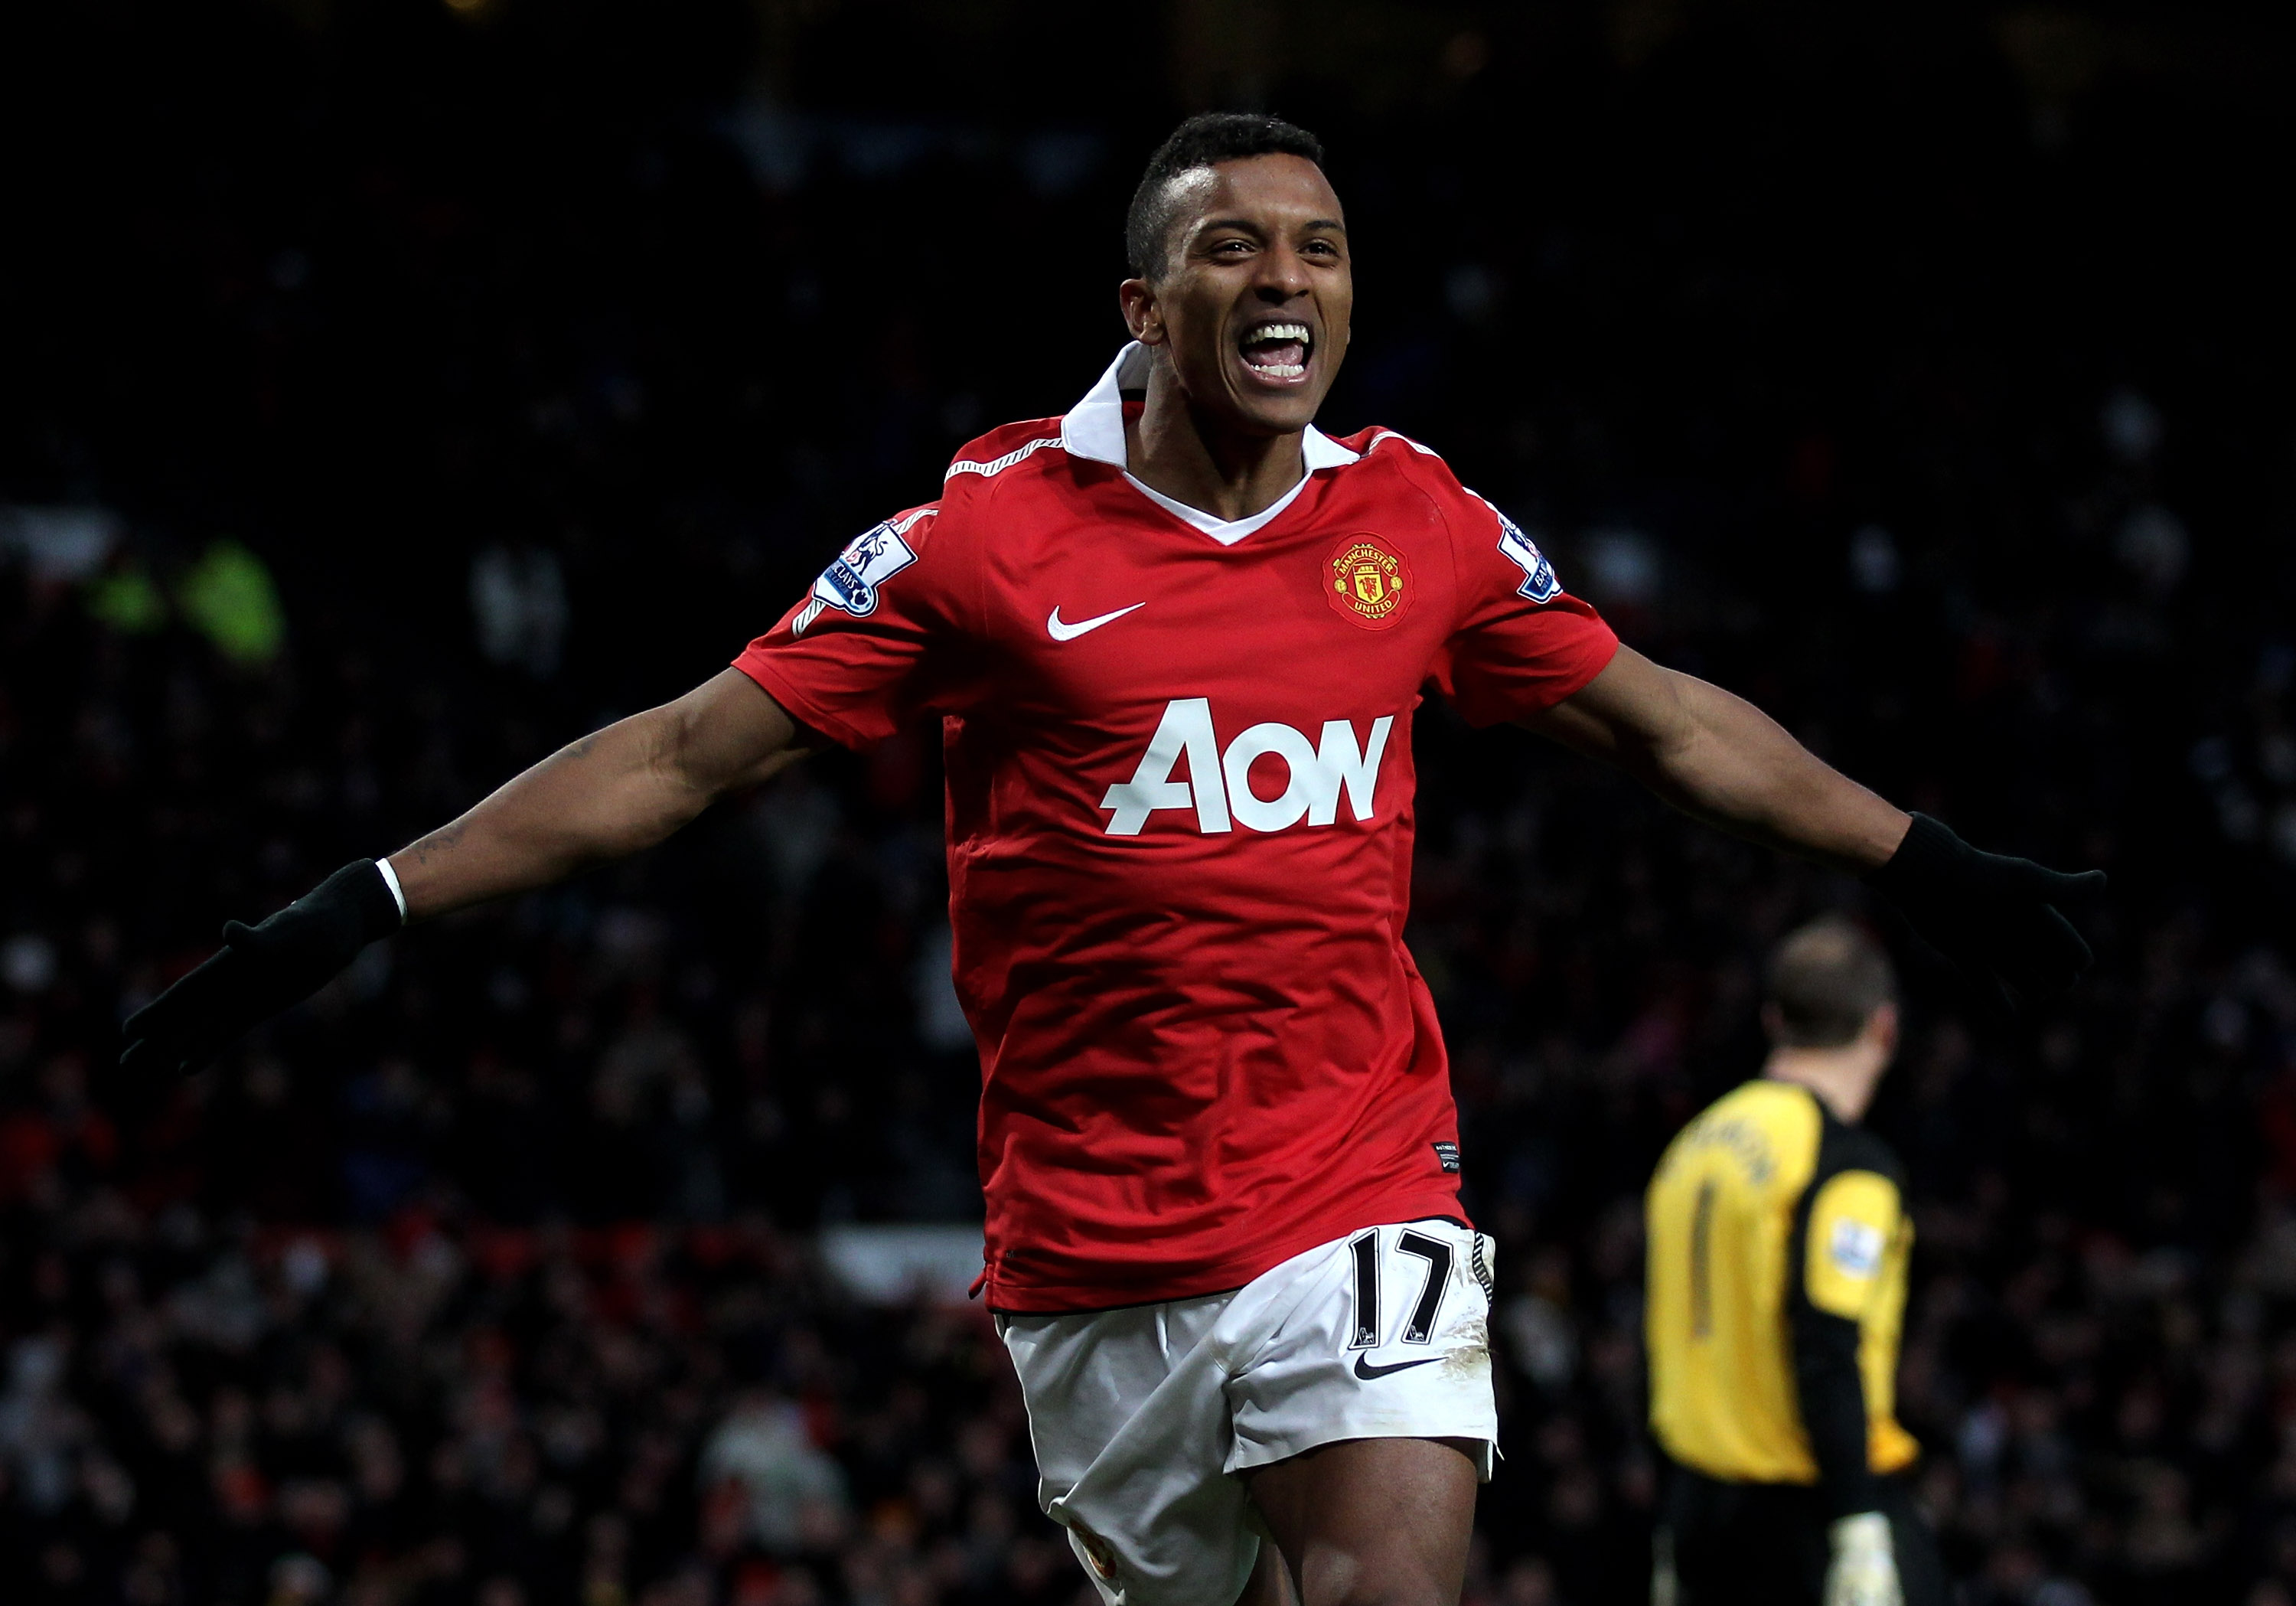 MANCHESTER, ENGLAND - NOVEMBER 27:  Nani of Manchester United celebrates scoring his team's fifth goal during the Barclays Premier League match between Manchester United and Blackburn Rovers at Old Trafford on November 27, 2010 in Manchester, England.  (P